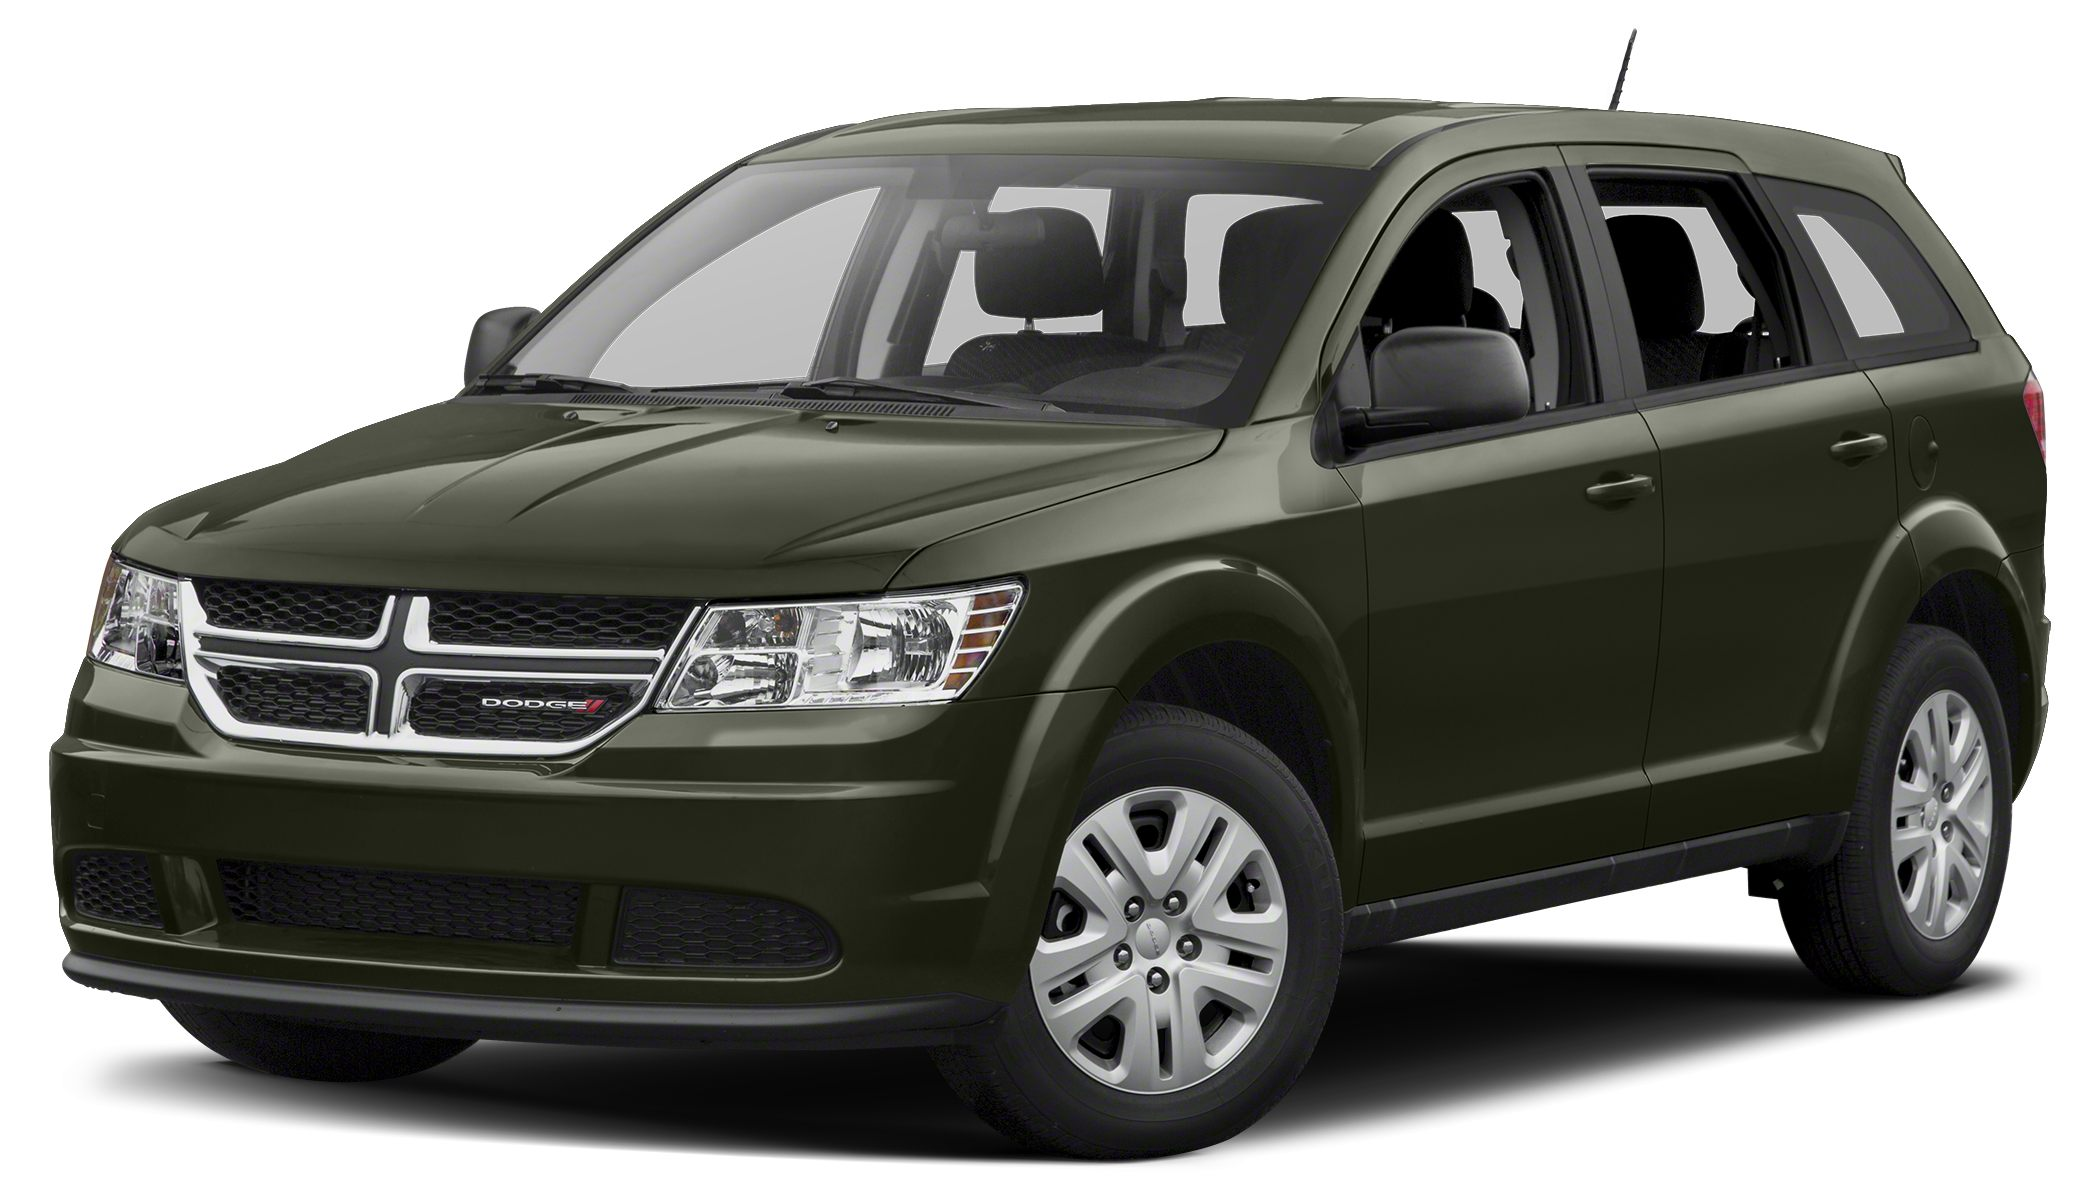 2016 Dodge Journey SE The Our Cost Price reflects all applicable manufacturer rebates andor incen